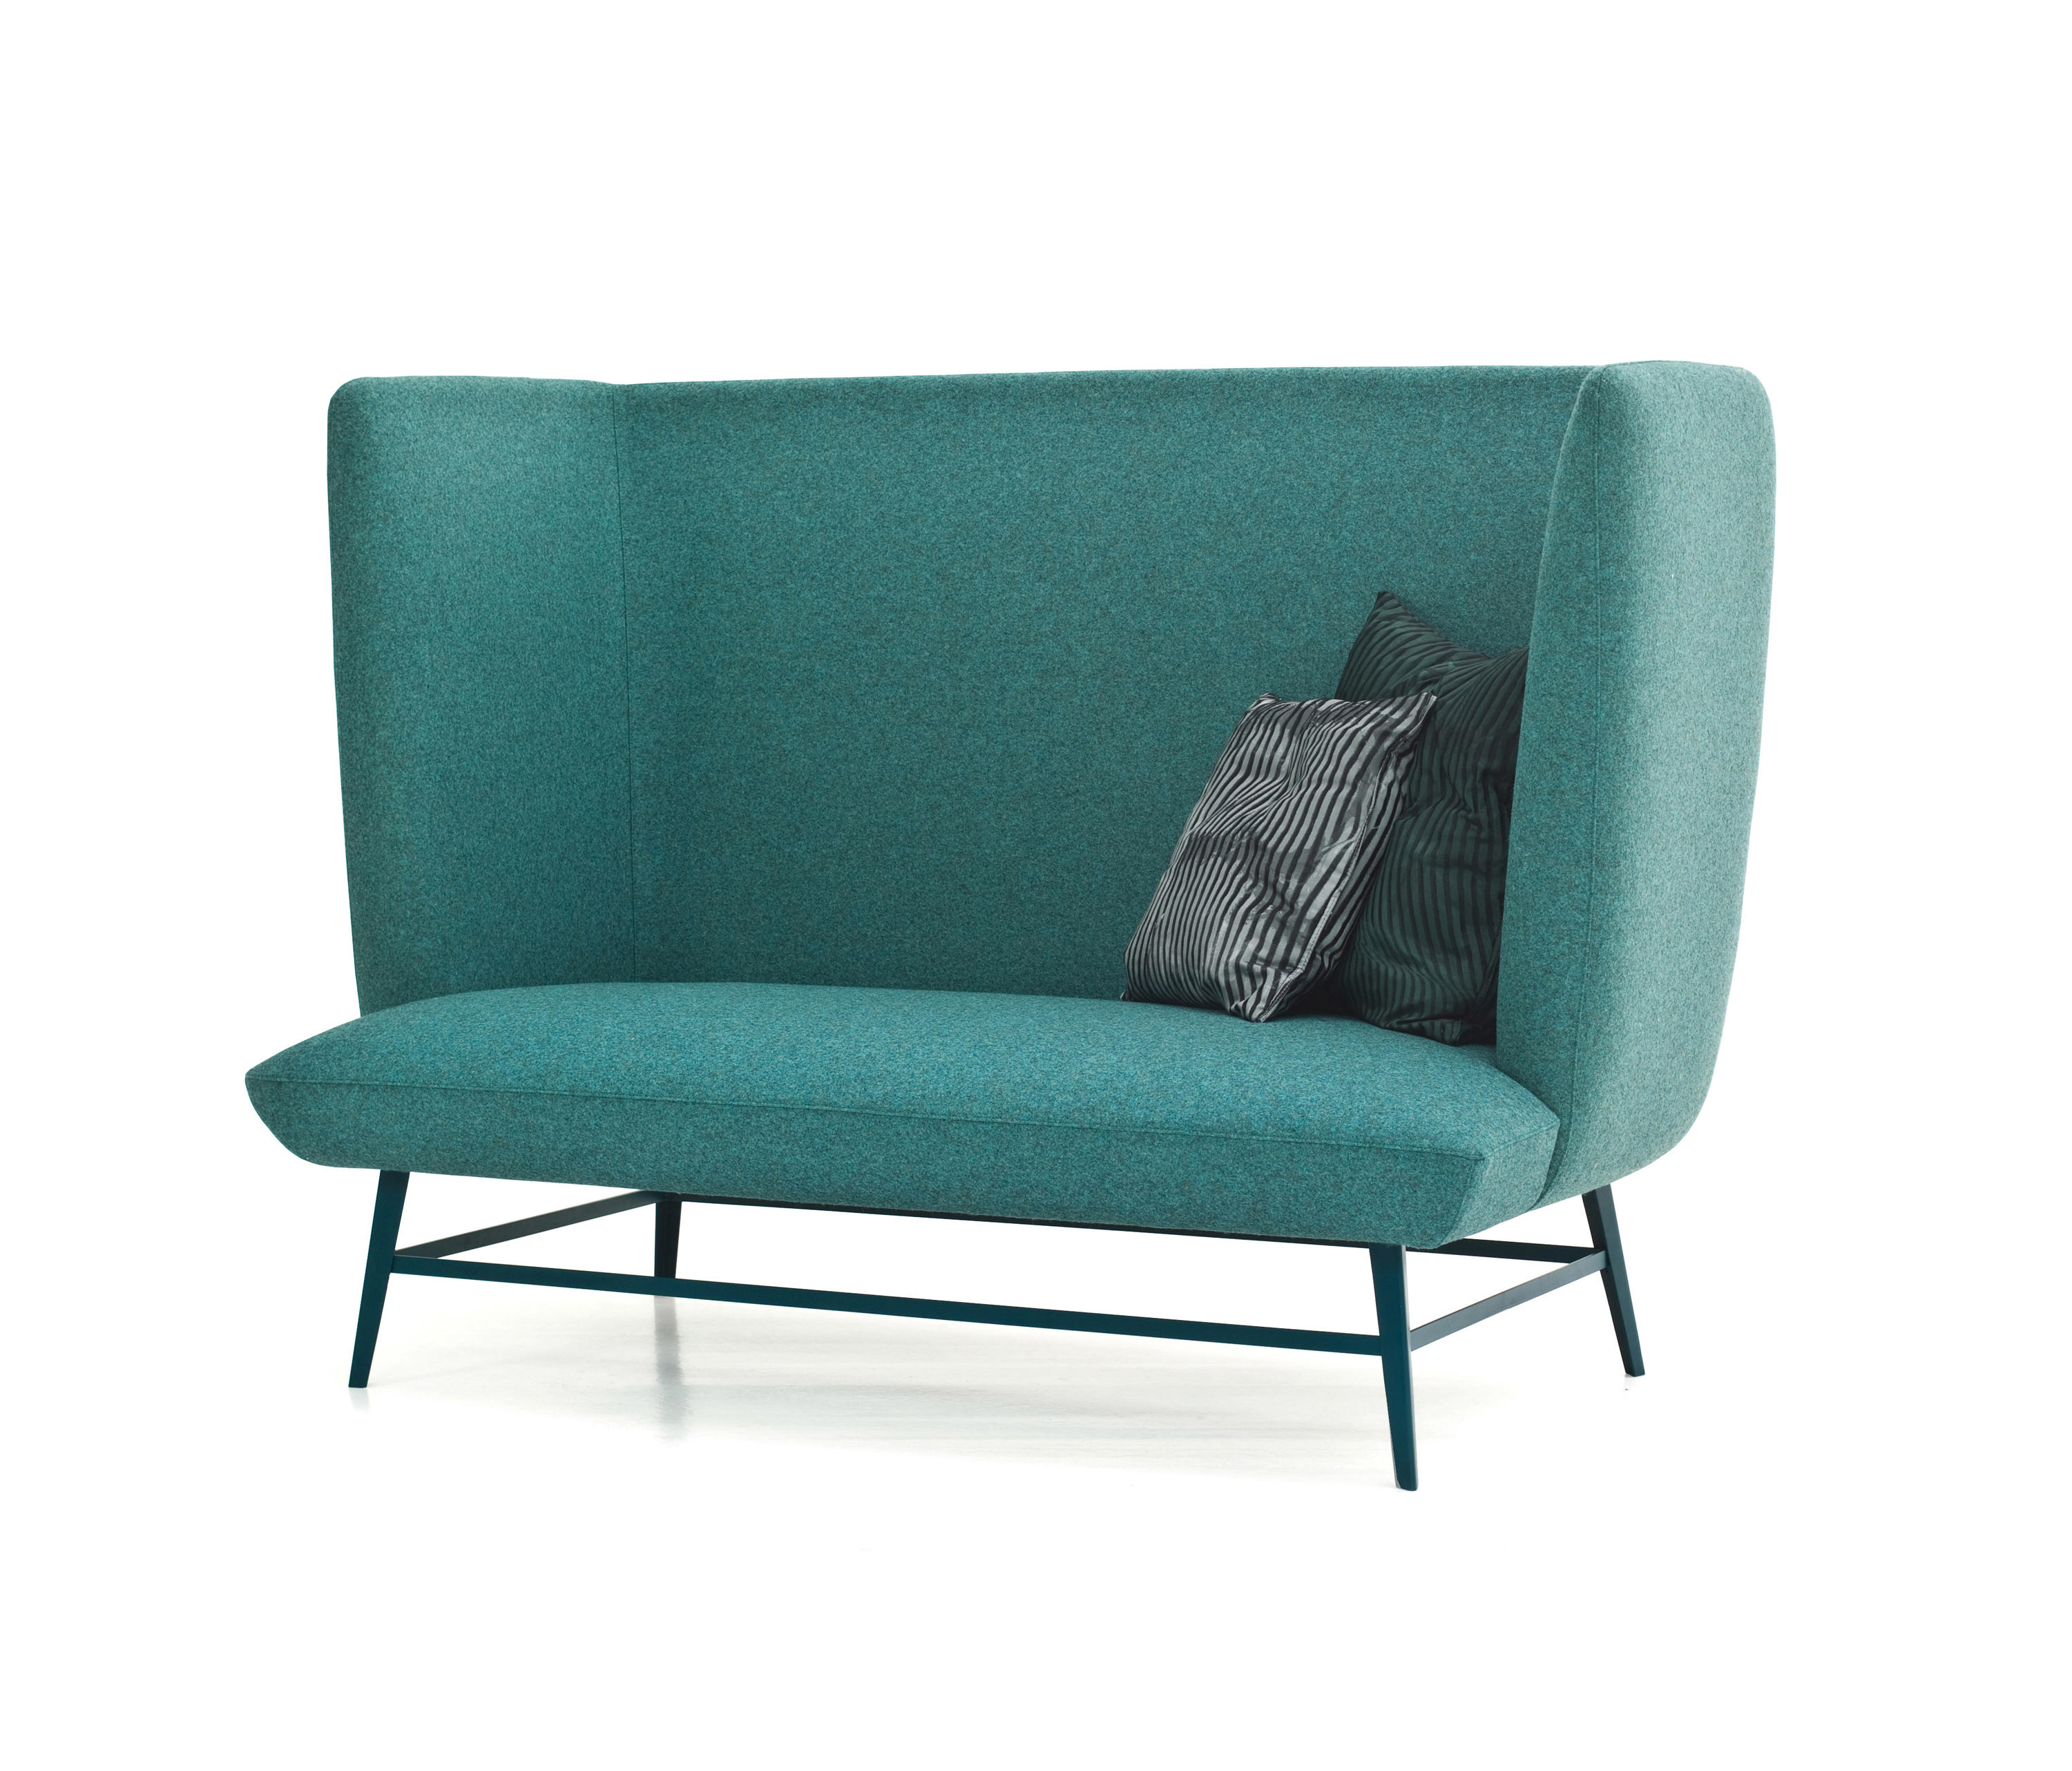 GIMME SHELTER Sofas from Diesel by Moroso